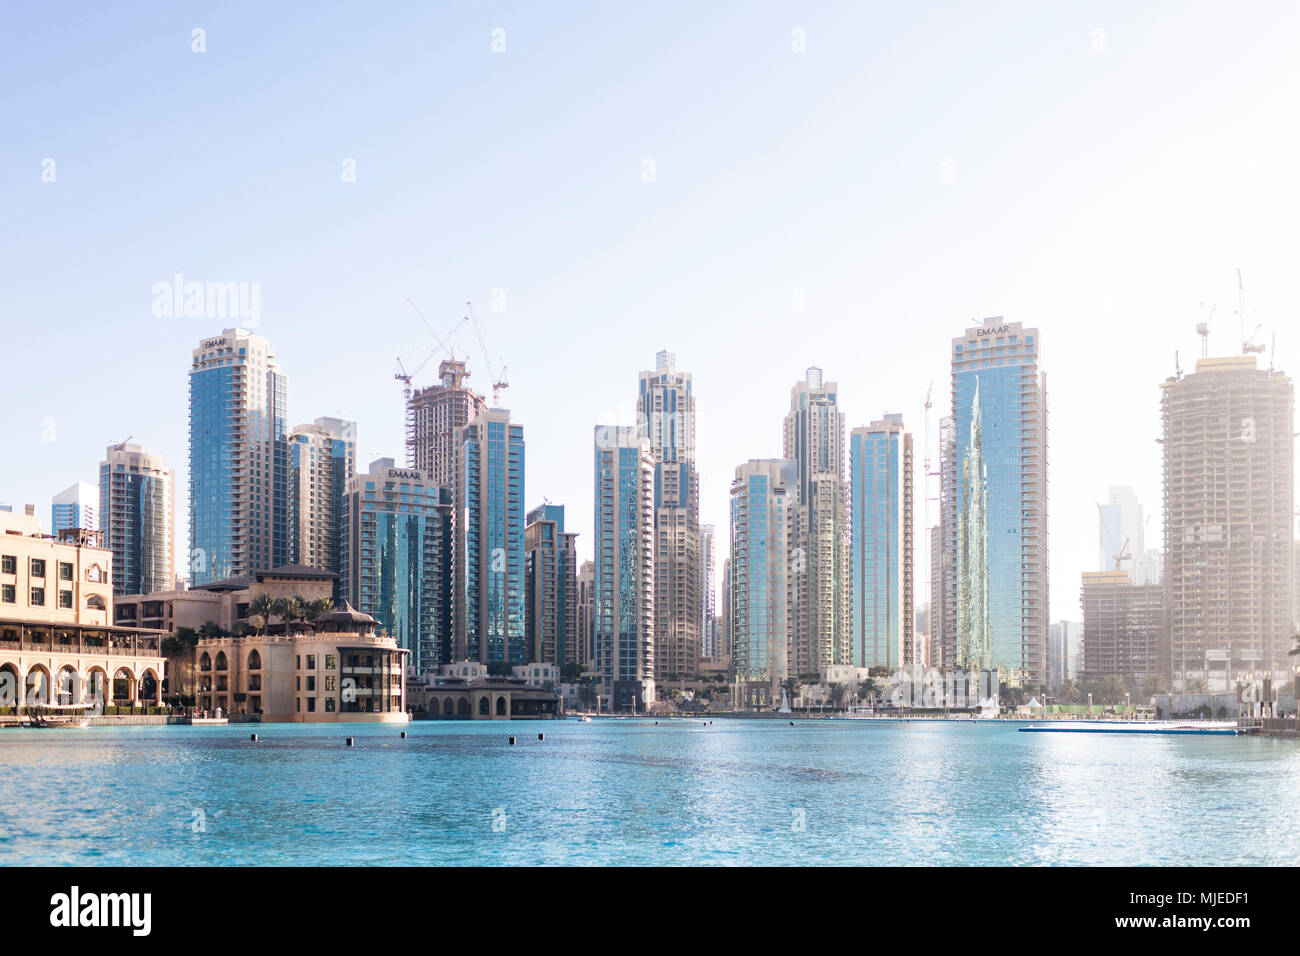 Dubai skyscrapers - Stock Image